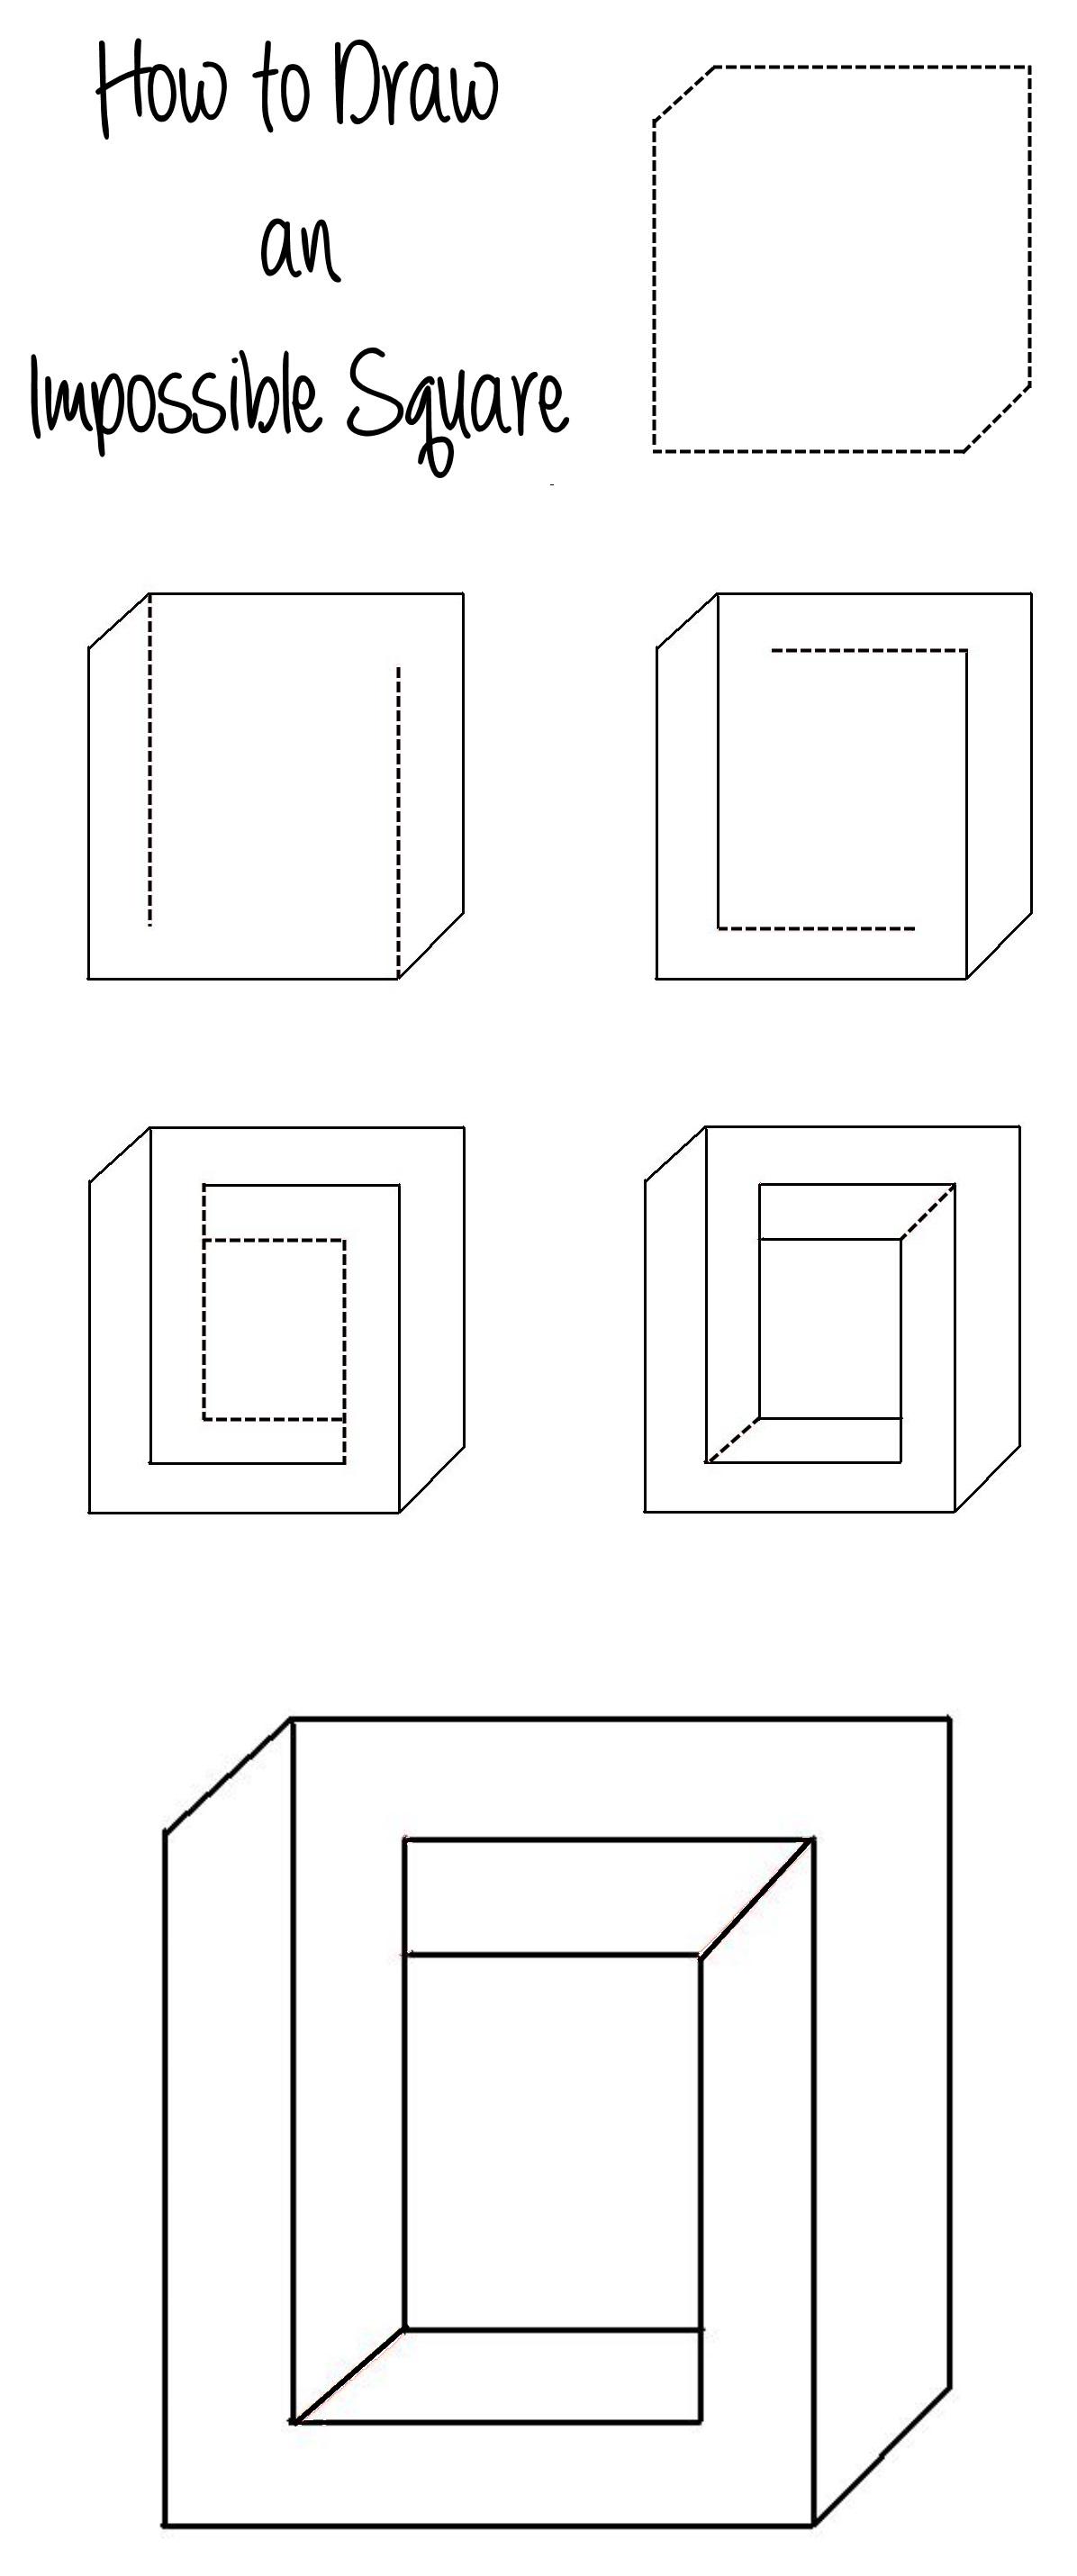 How To Draw An Impossible Square Illusion